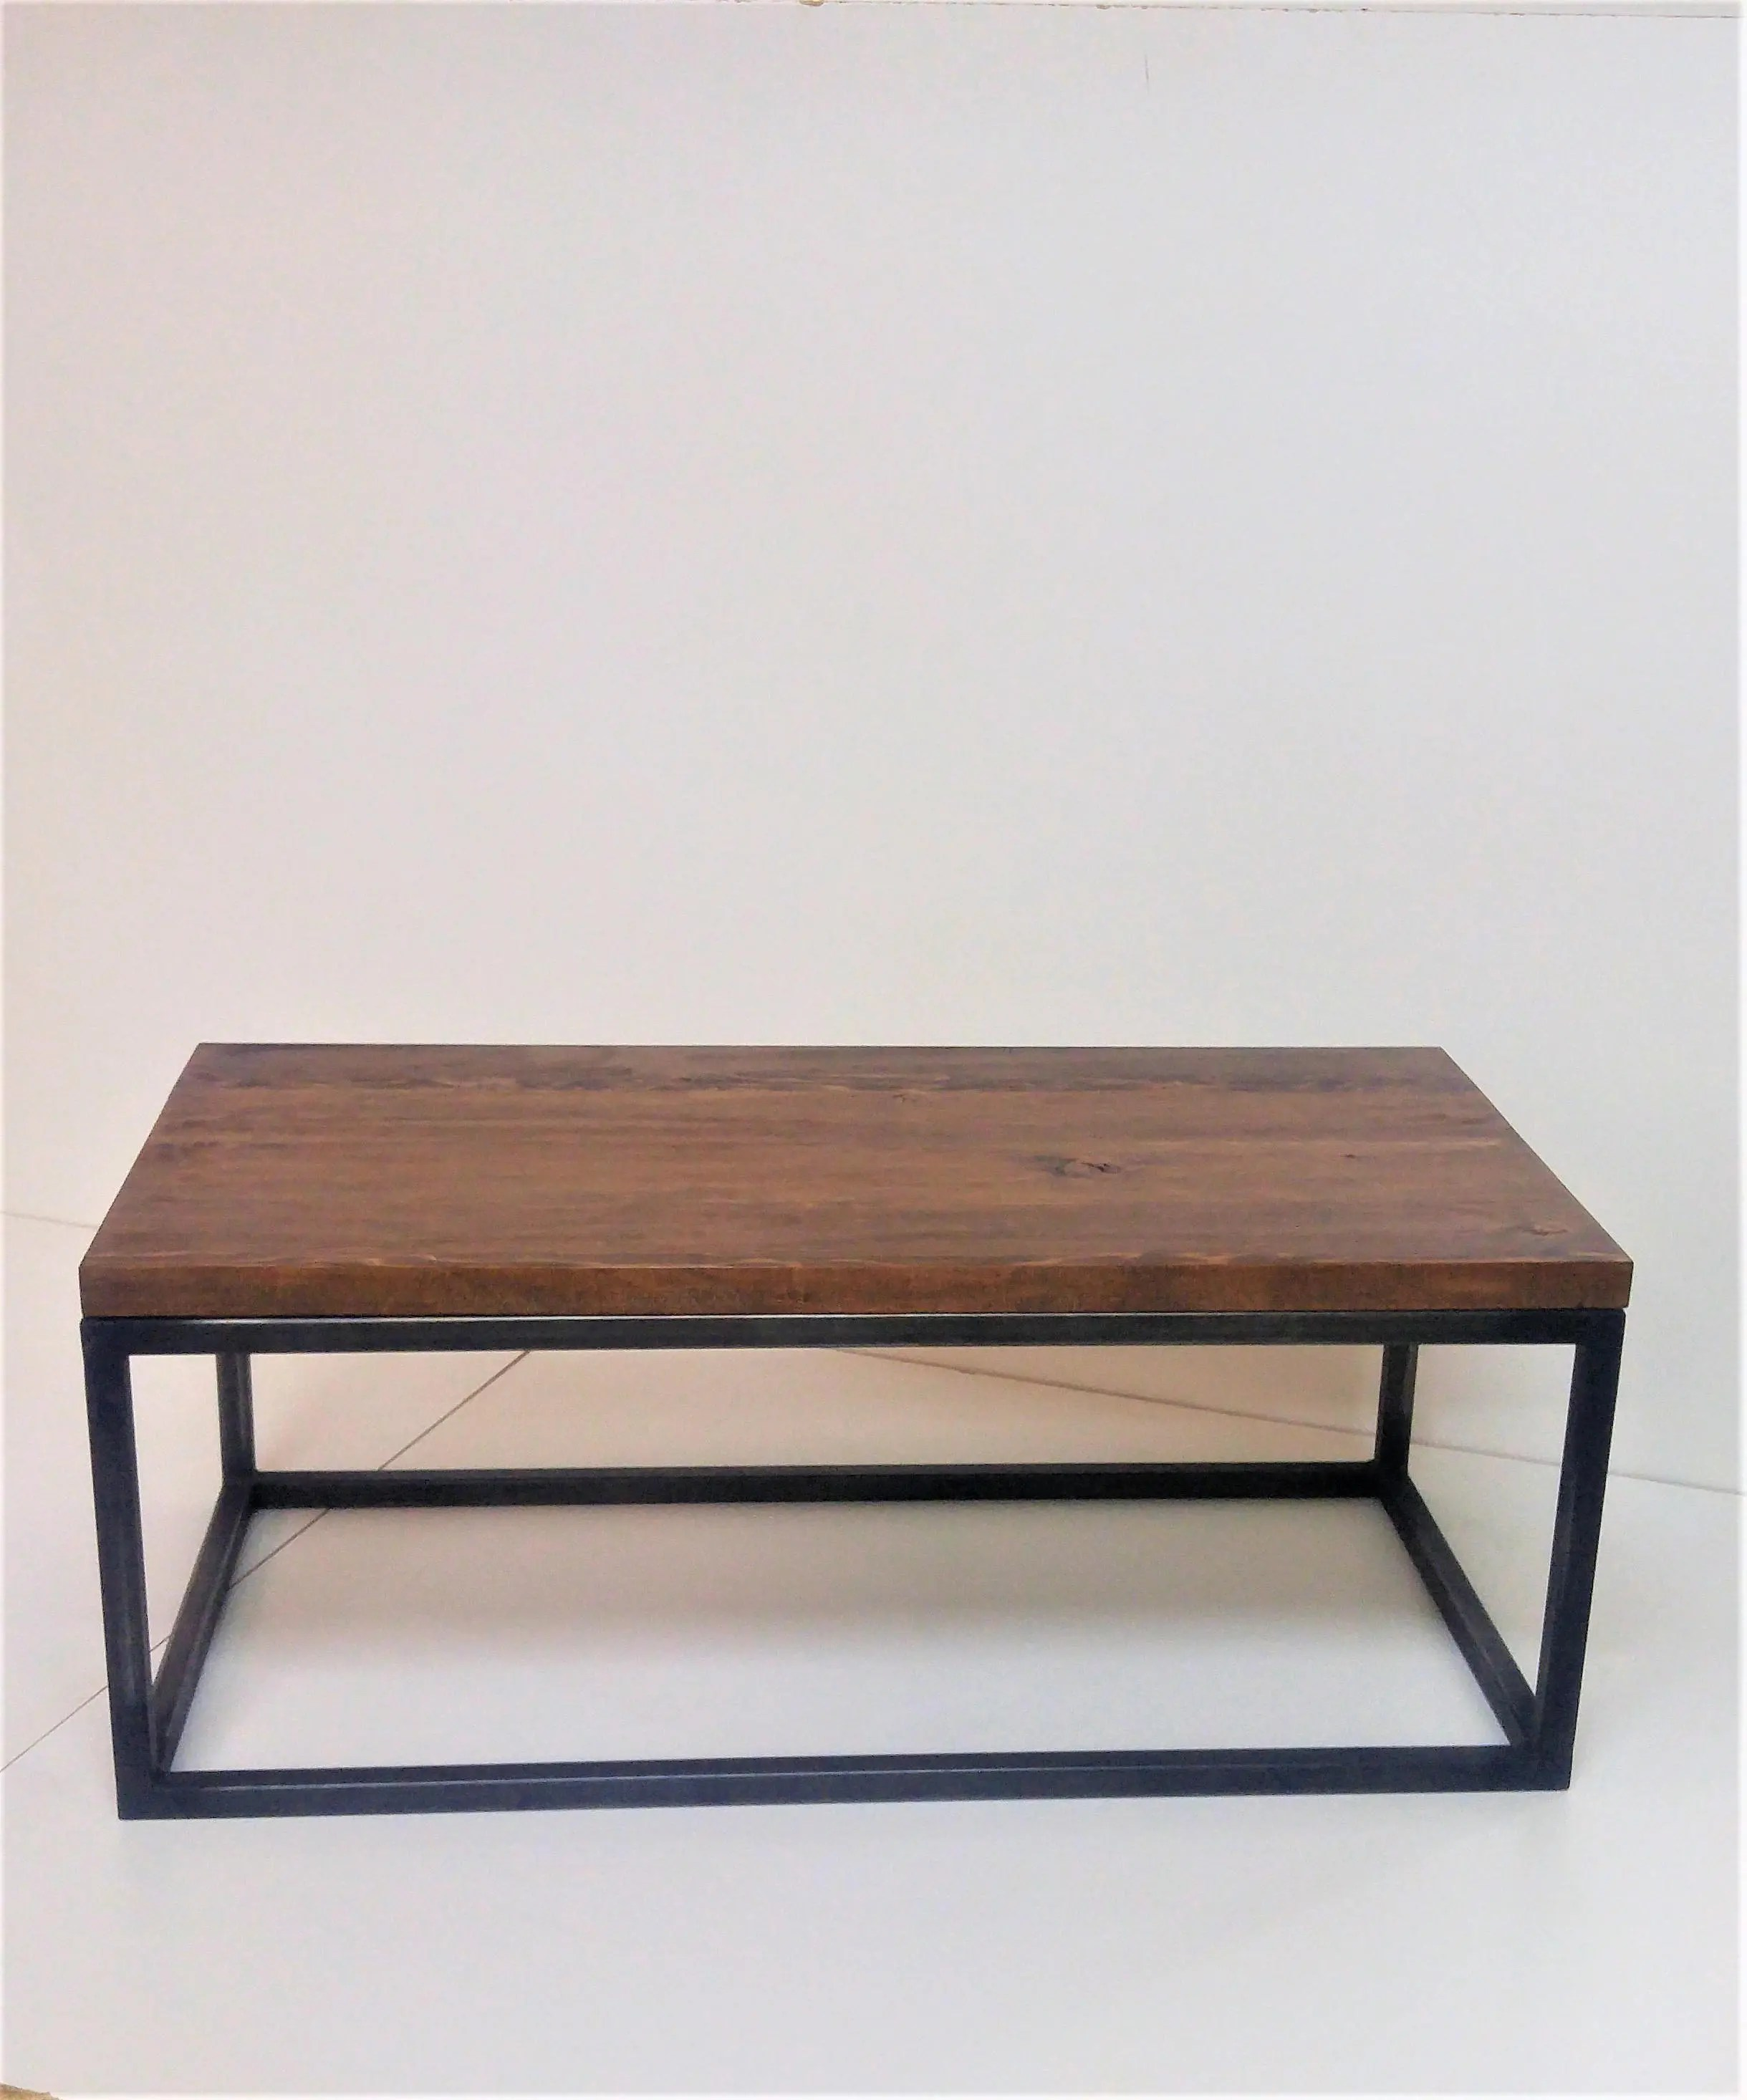 wood and steel table etsy